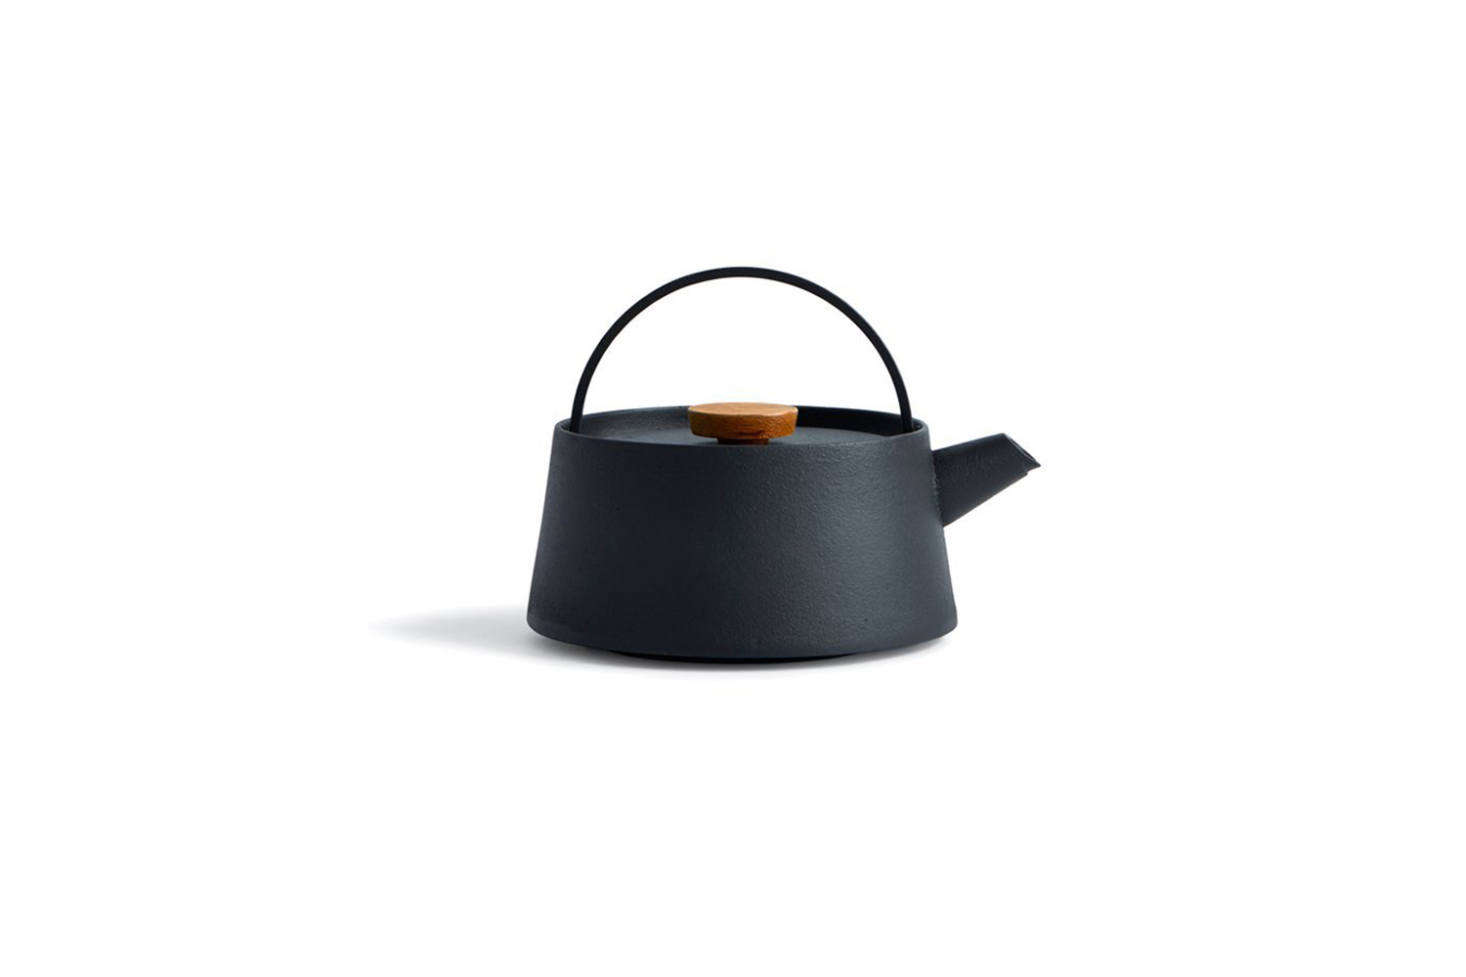 The swinging handle of the Tetu Cast Iron Kettle by Koizumi Studio can be folded down, making it easy to remove the lid; $550 at Nalata Nalata.